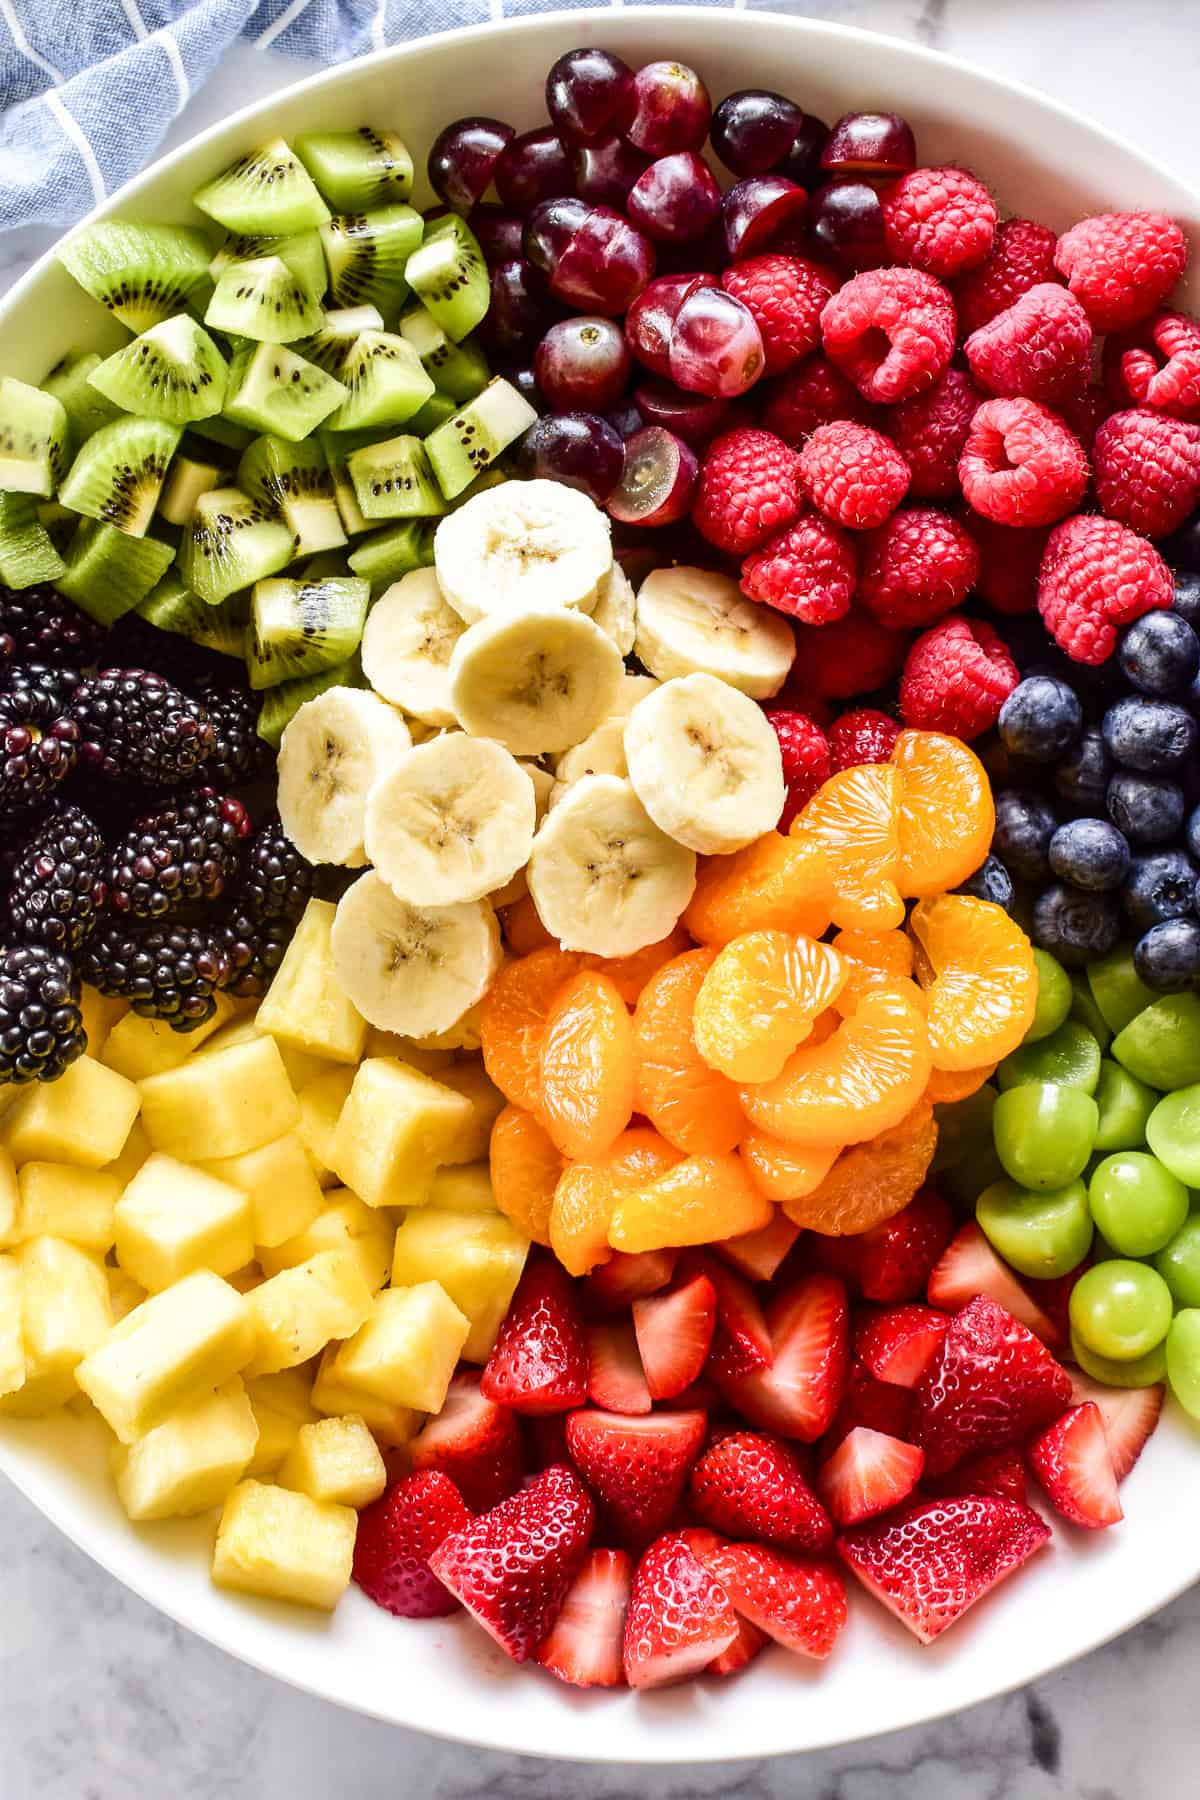 Close up of Fruit Salad ingredients in a white bowl